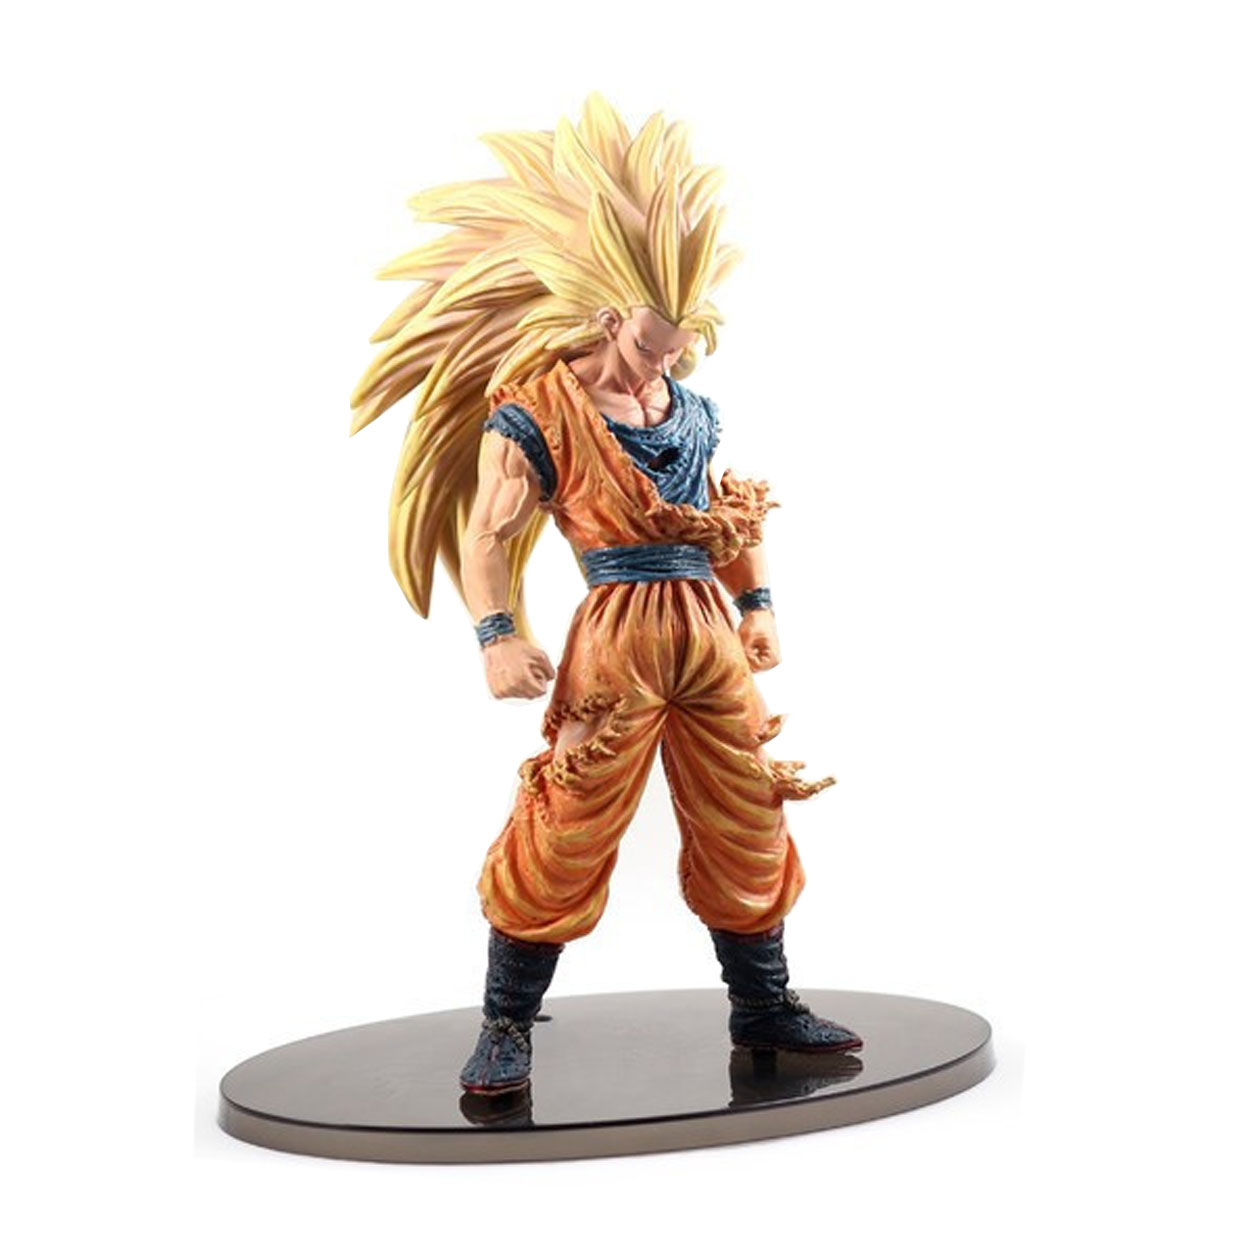 Chanycore 21CM Japanese Anime Dragon BALL Z Battle Damage Ver Super Saiyan 3 SON GOKU GOHAN Vegeta Action Figure PVC Model Toy dragon ball super toy son goku action figure anime super vegeta pop model doll pvc collection toys for children christmas gifts